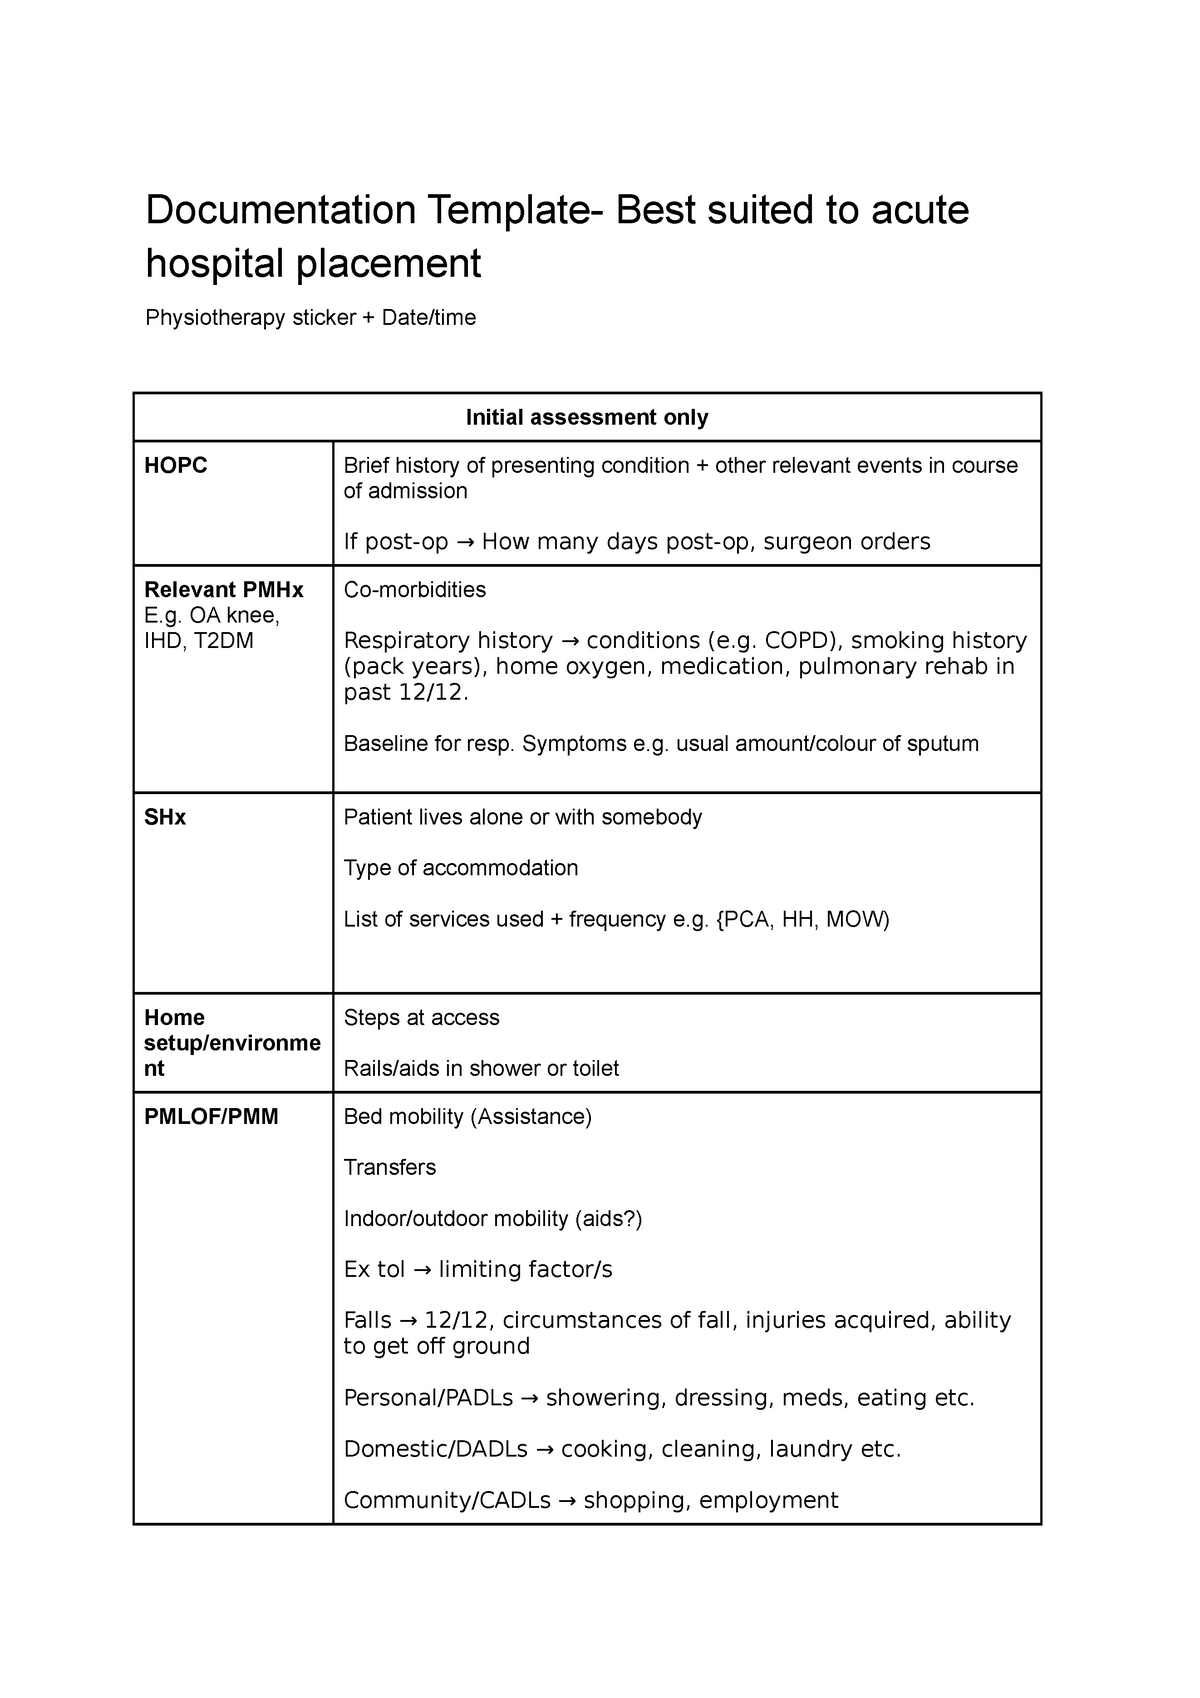 SOAP note template - Documentation Template- Best suited to acute Inside Soap Report Template